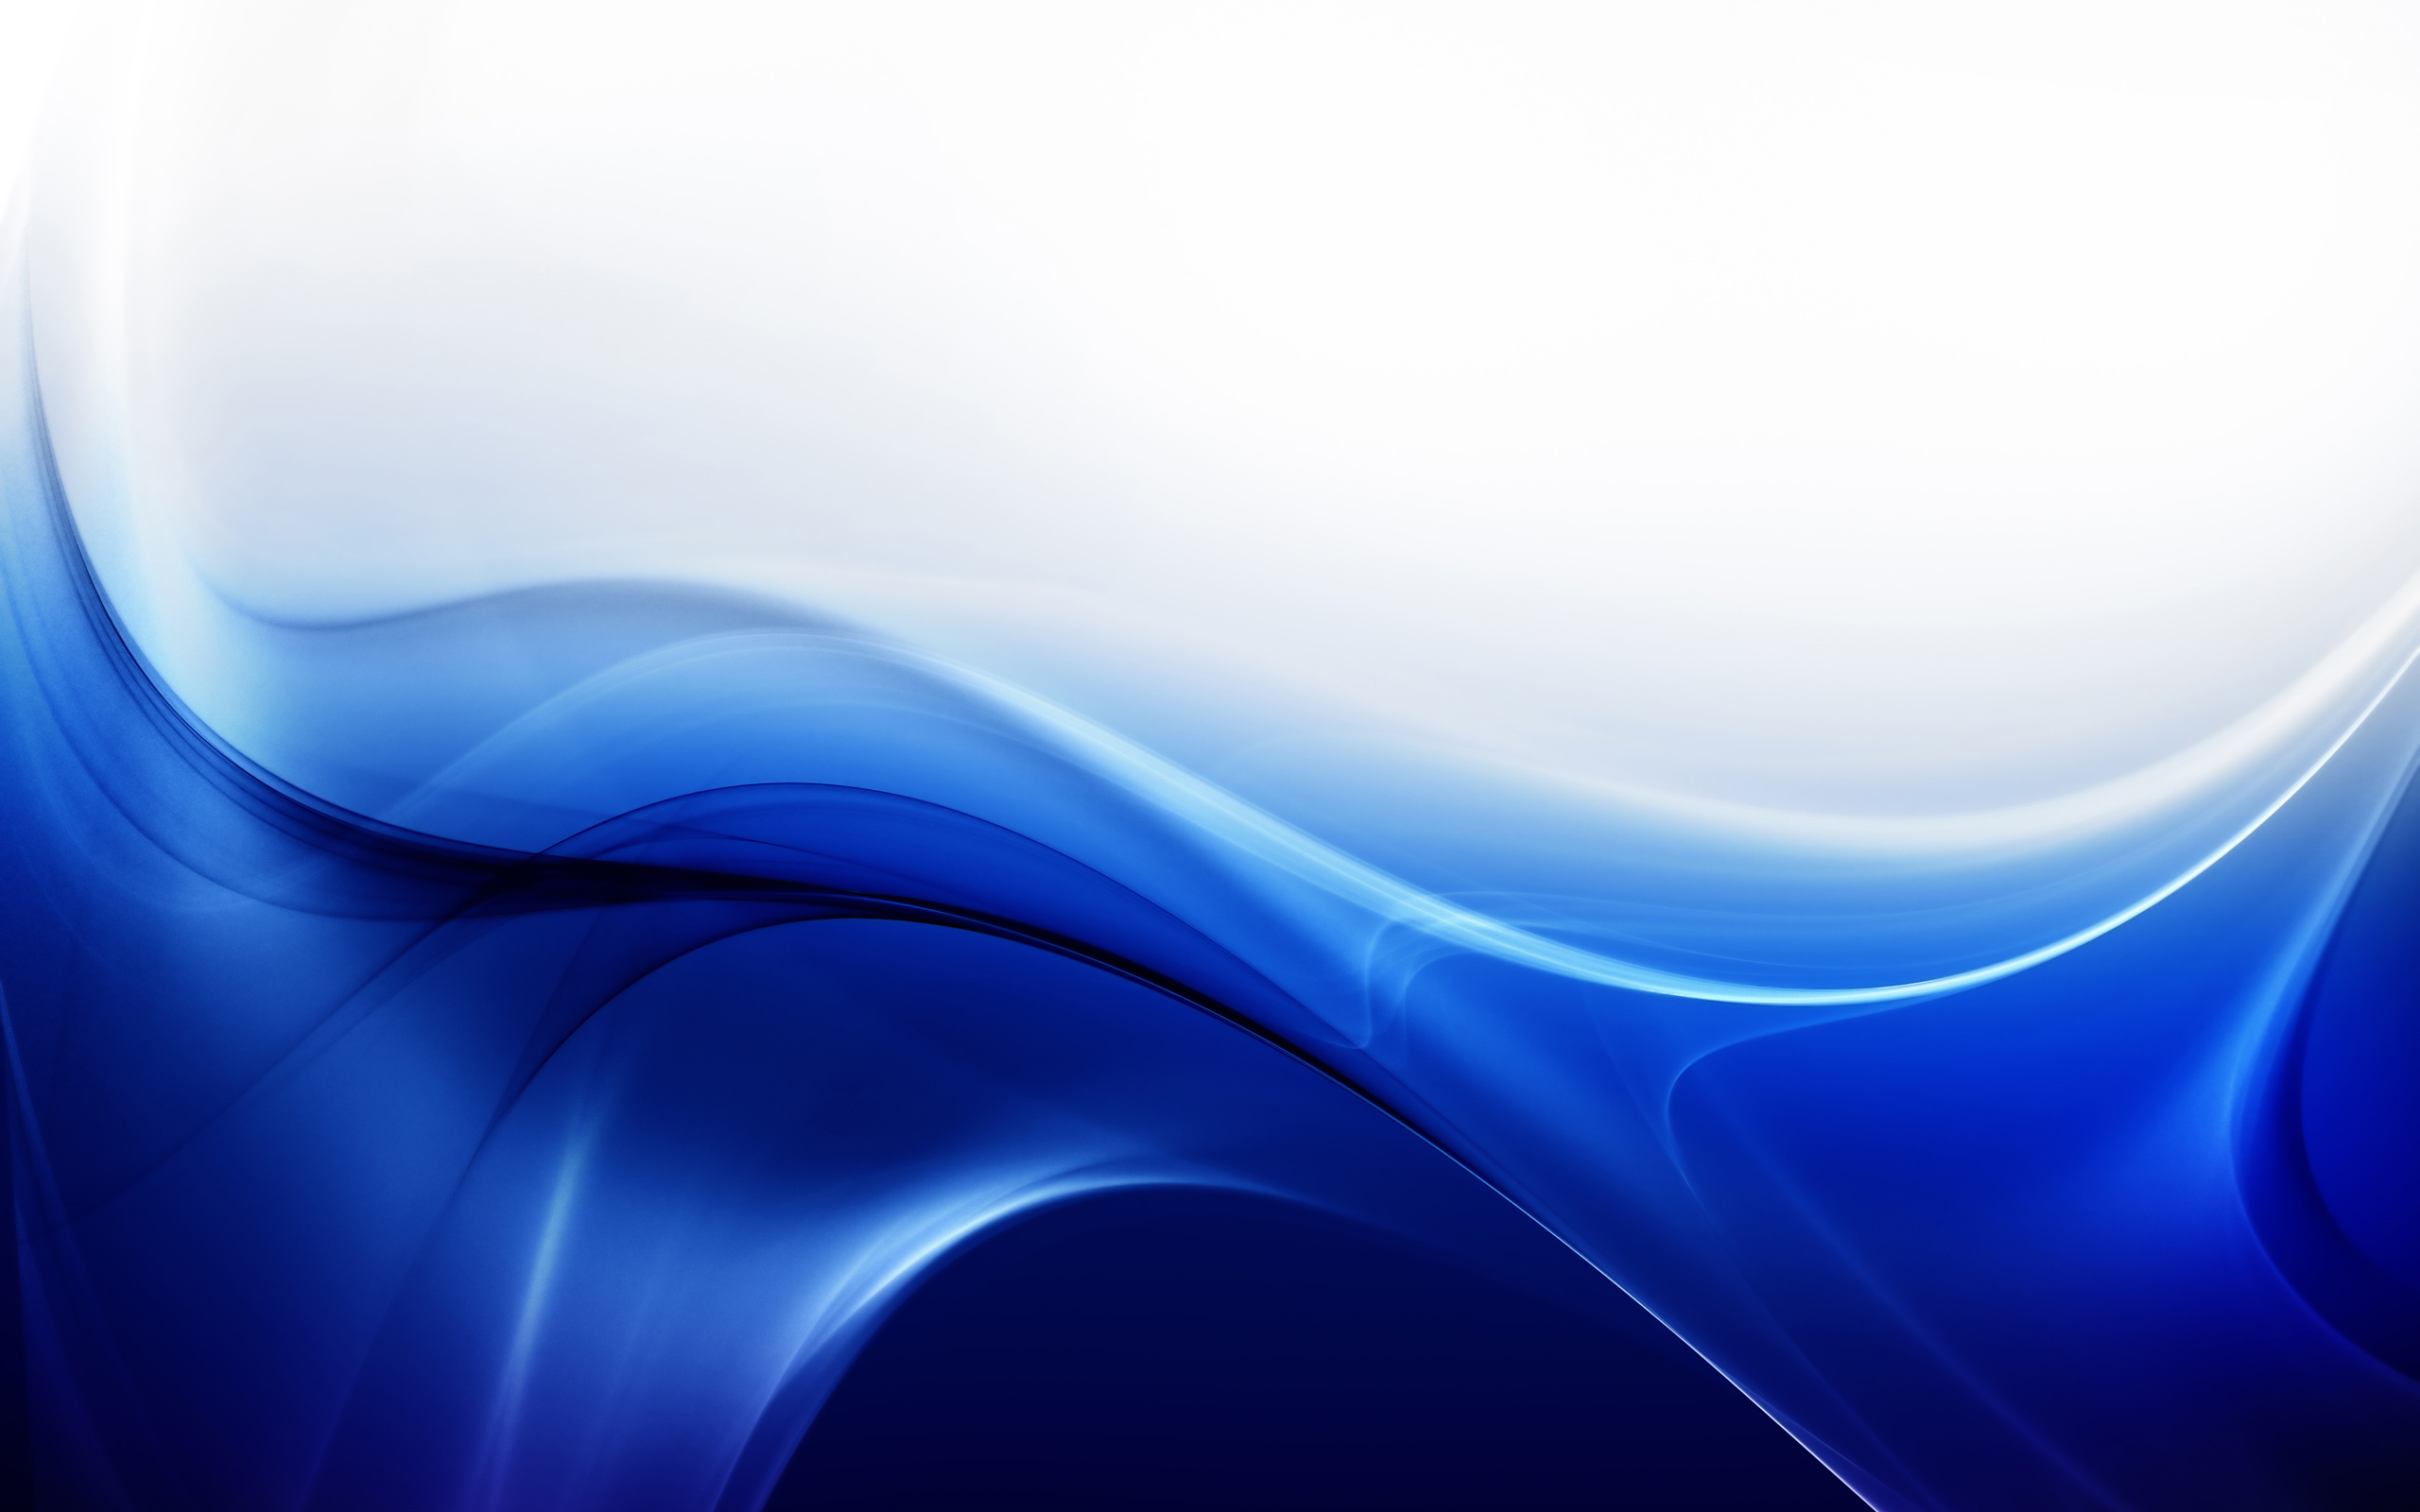 Abstract Blue Wallpaper 45176 2560x1600 px HDWallSourcecom